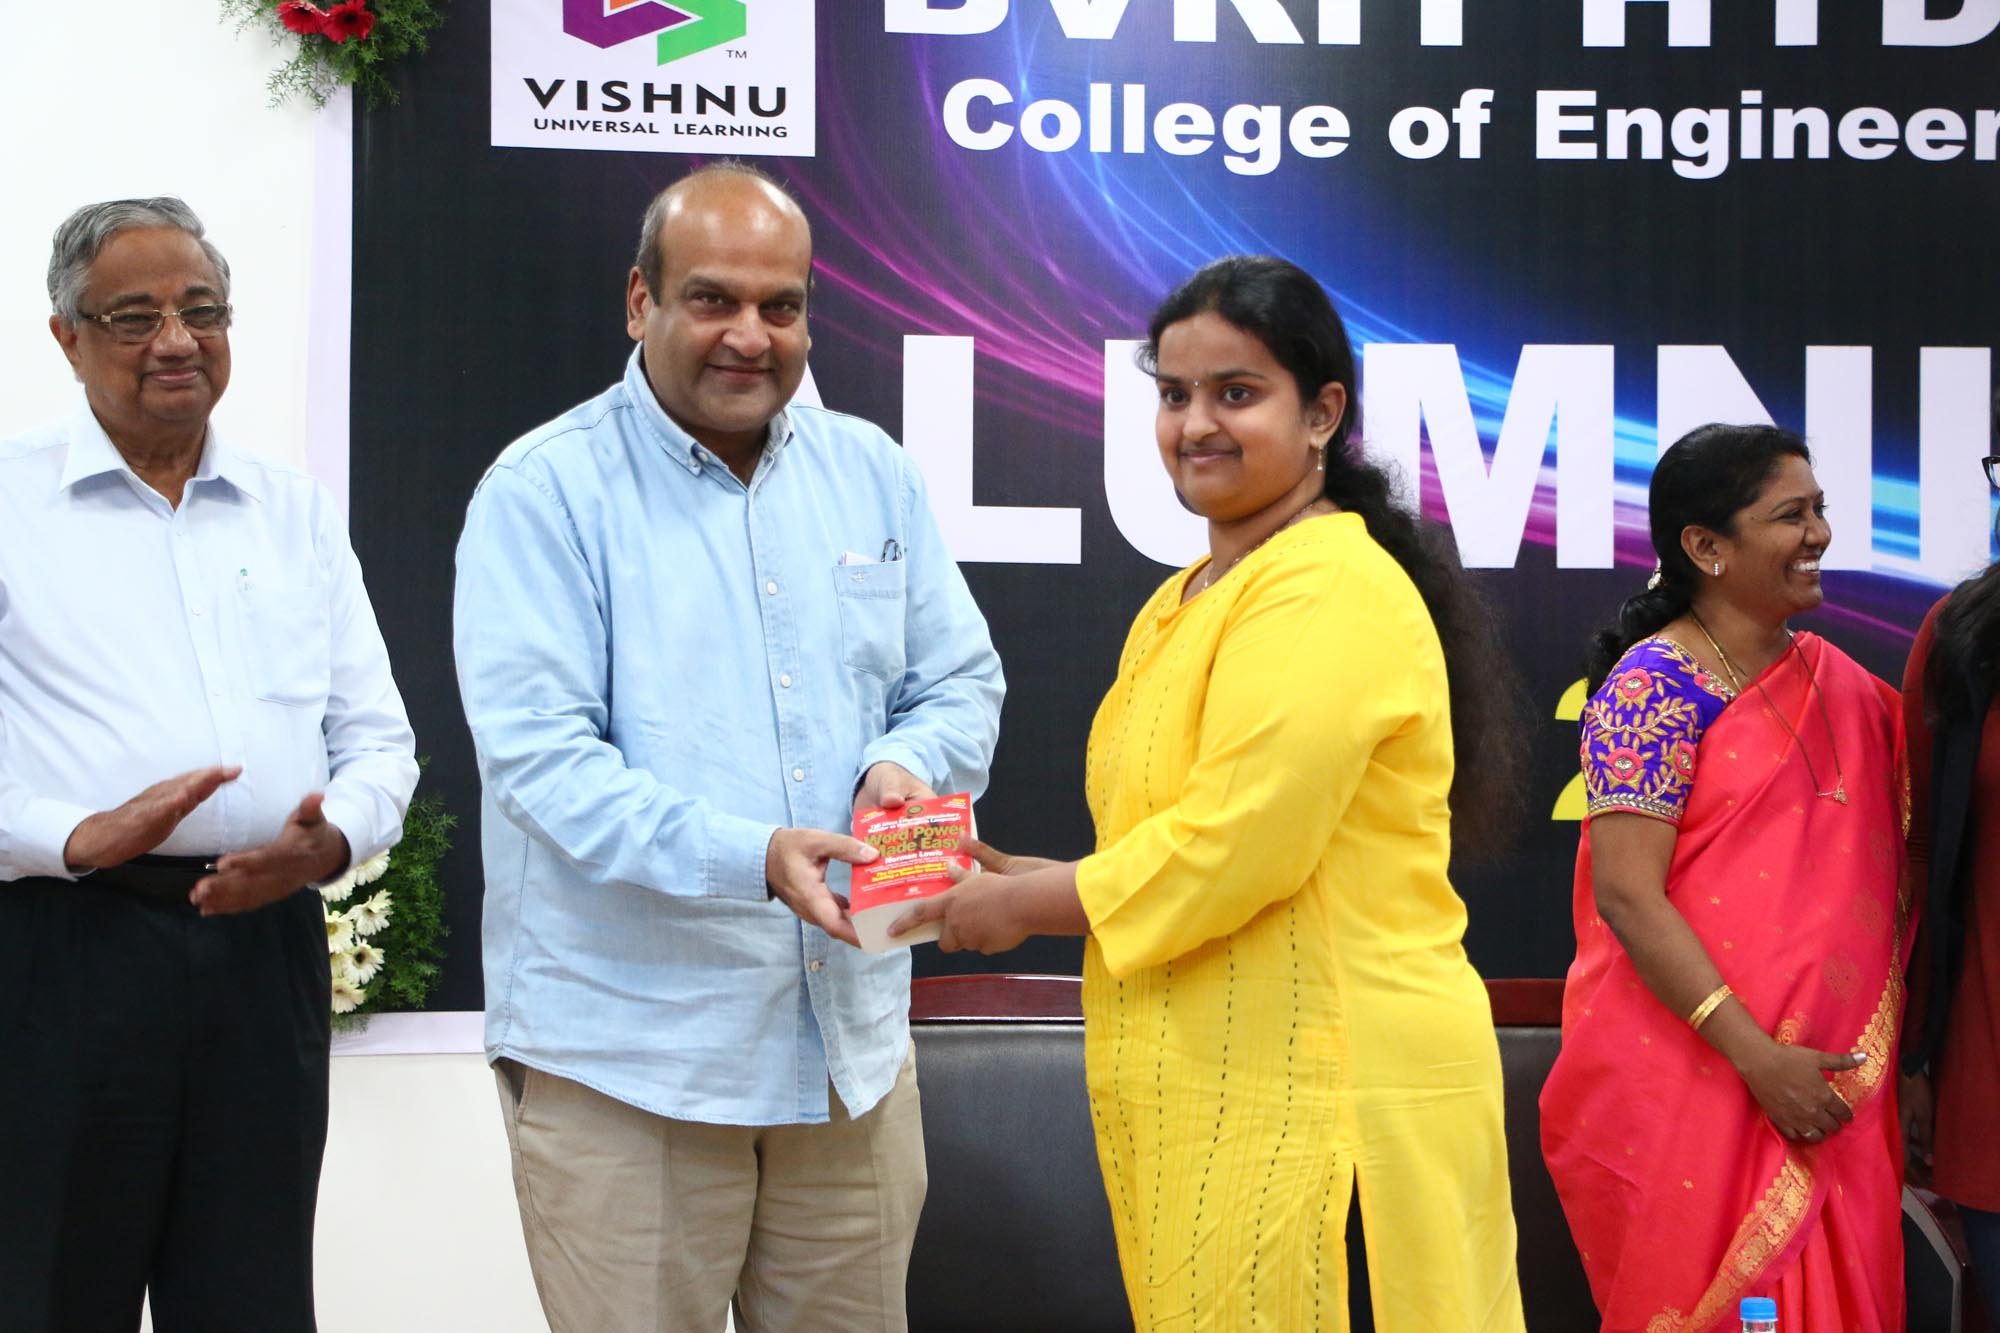 Chairman presenting - appreciation gift to Alumni Student